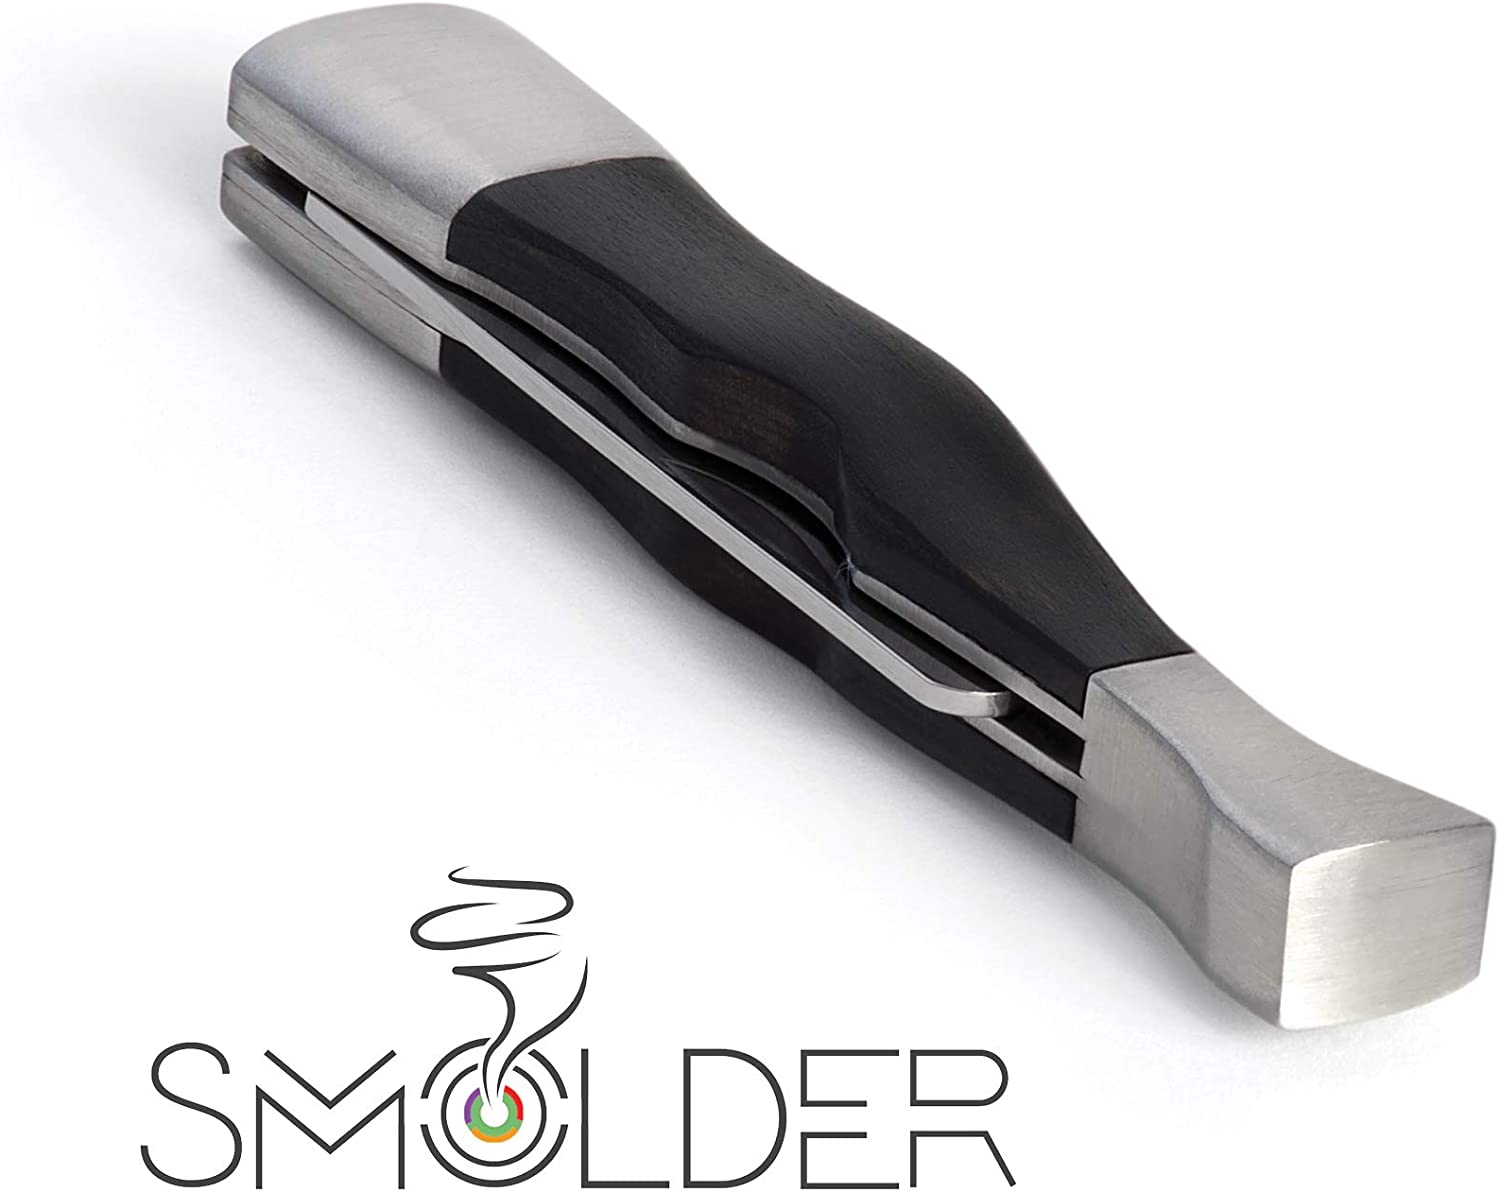 3-n-1 Tobacco Pipe Tool - Rosewood and T Steel. price 3 Stainless in High order 1